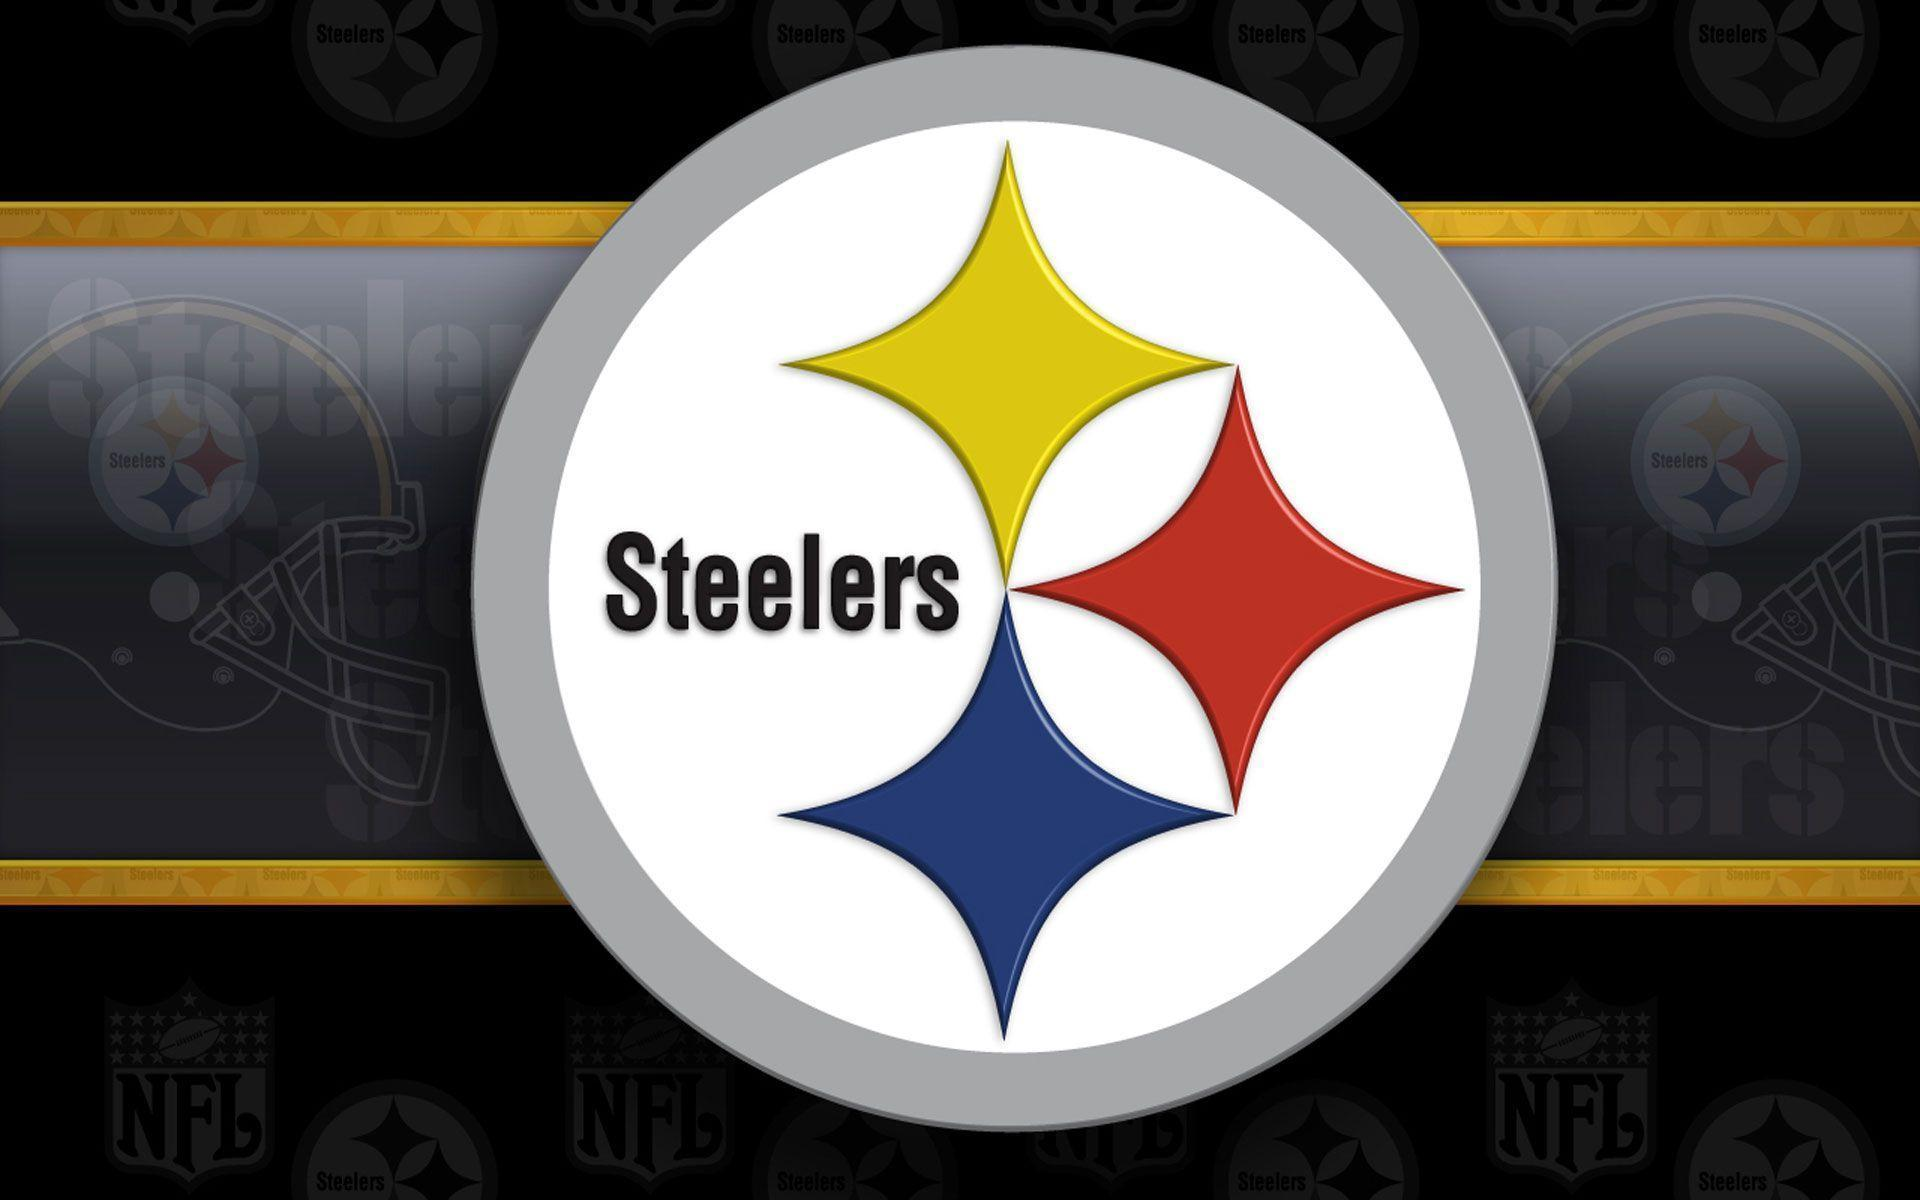 Interview with David, Owner of Pittsburgh Steelers